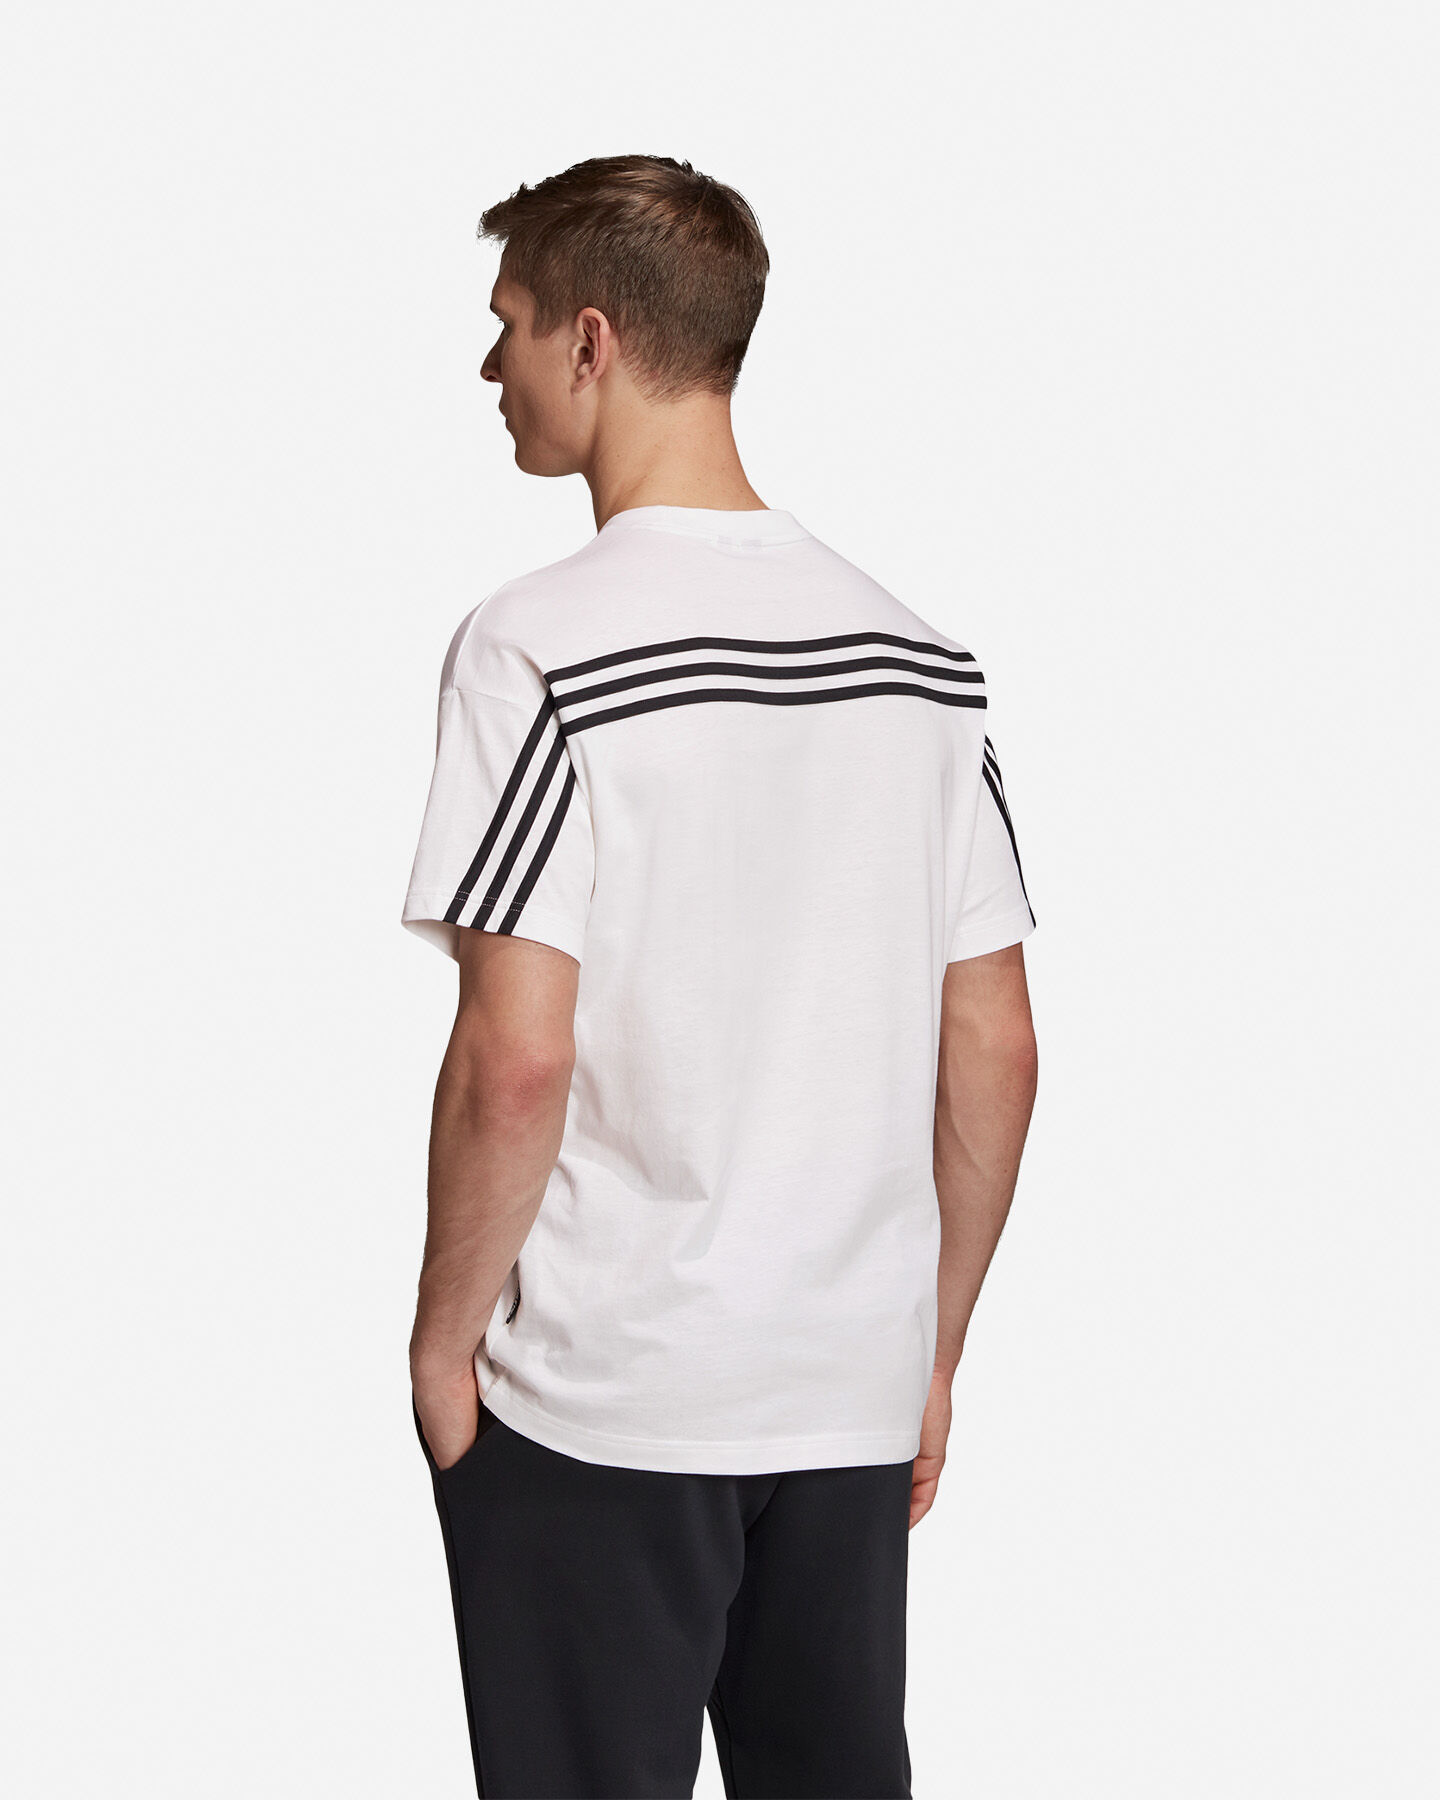 T-Shirt ADIDAS MUST HAVE 3 STRIPES M S5216653 scatto 4